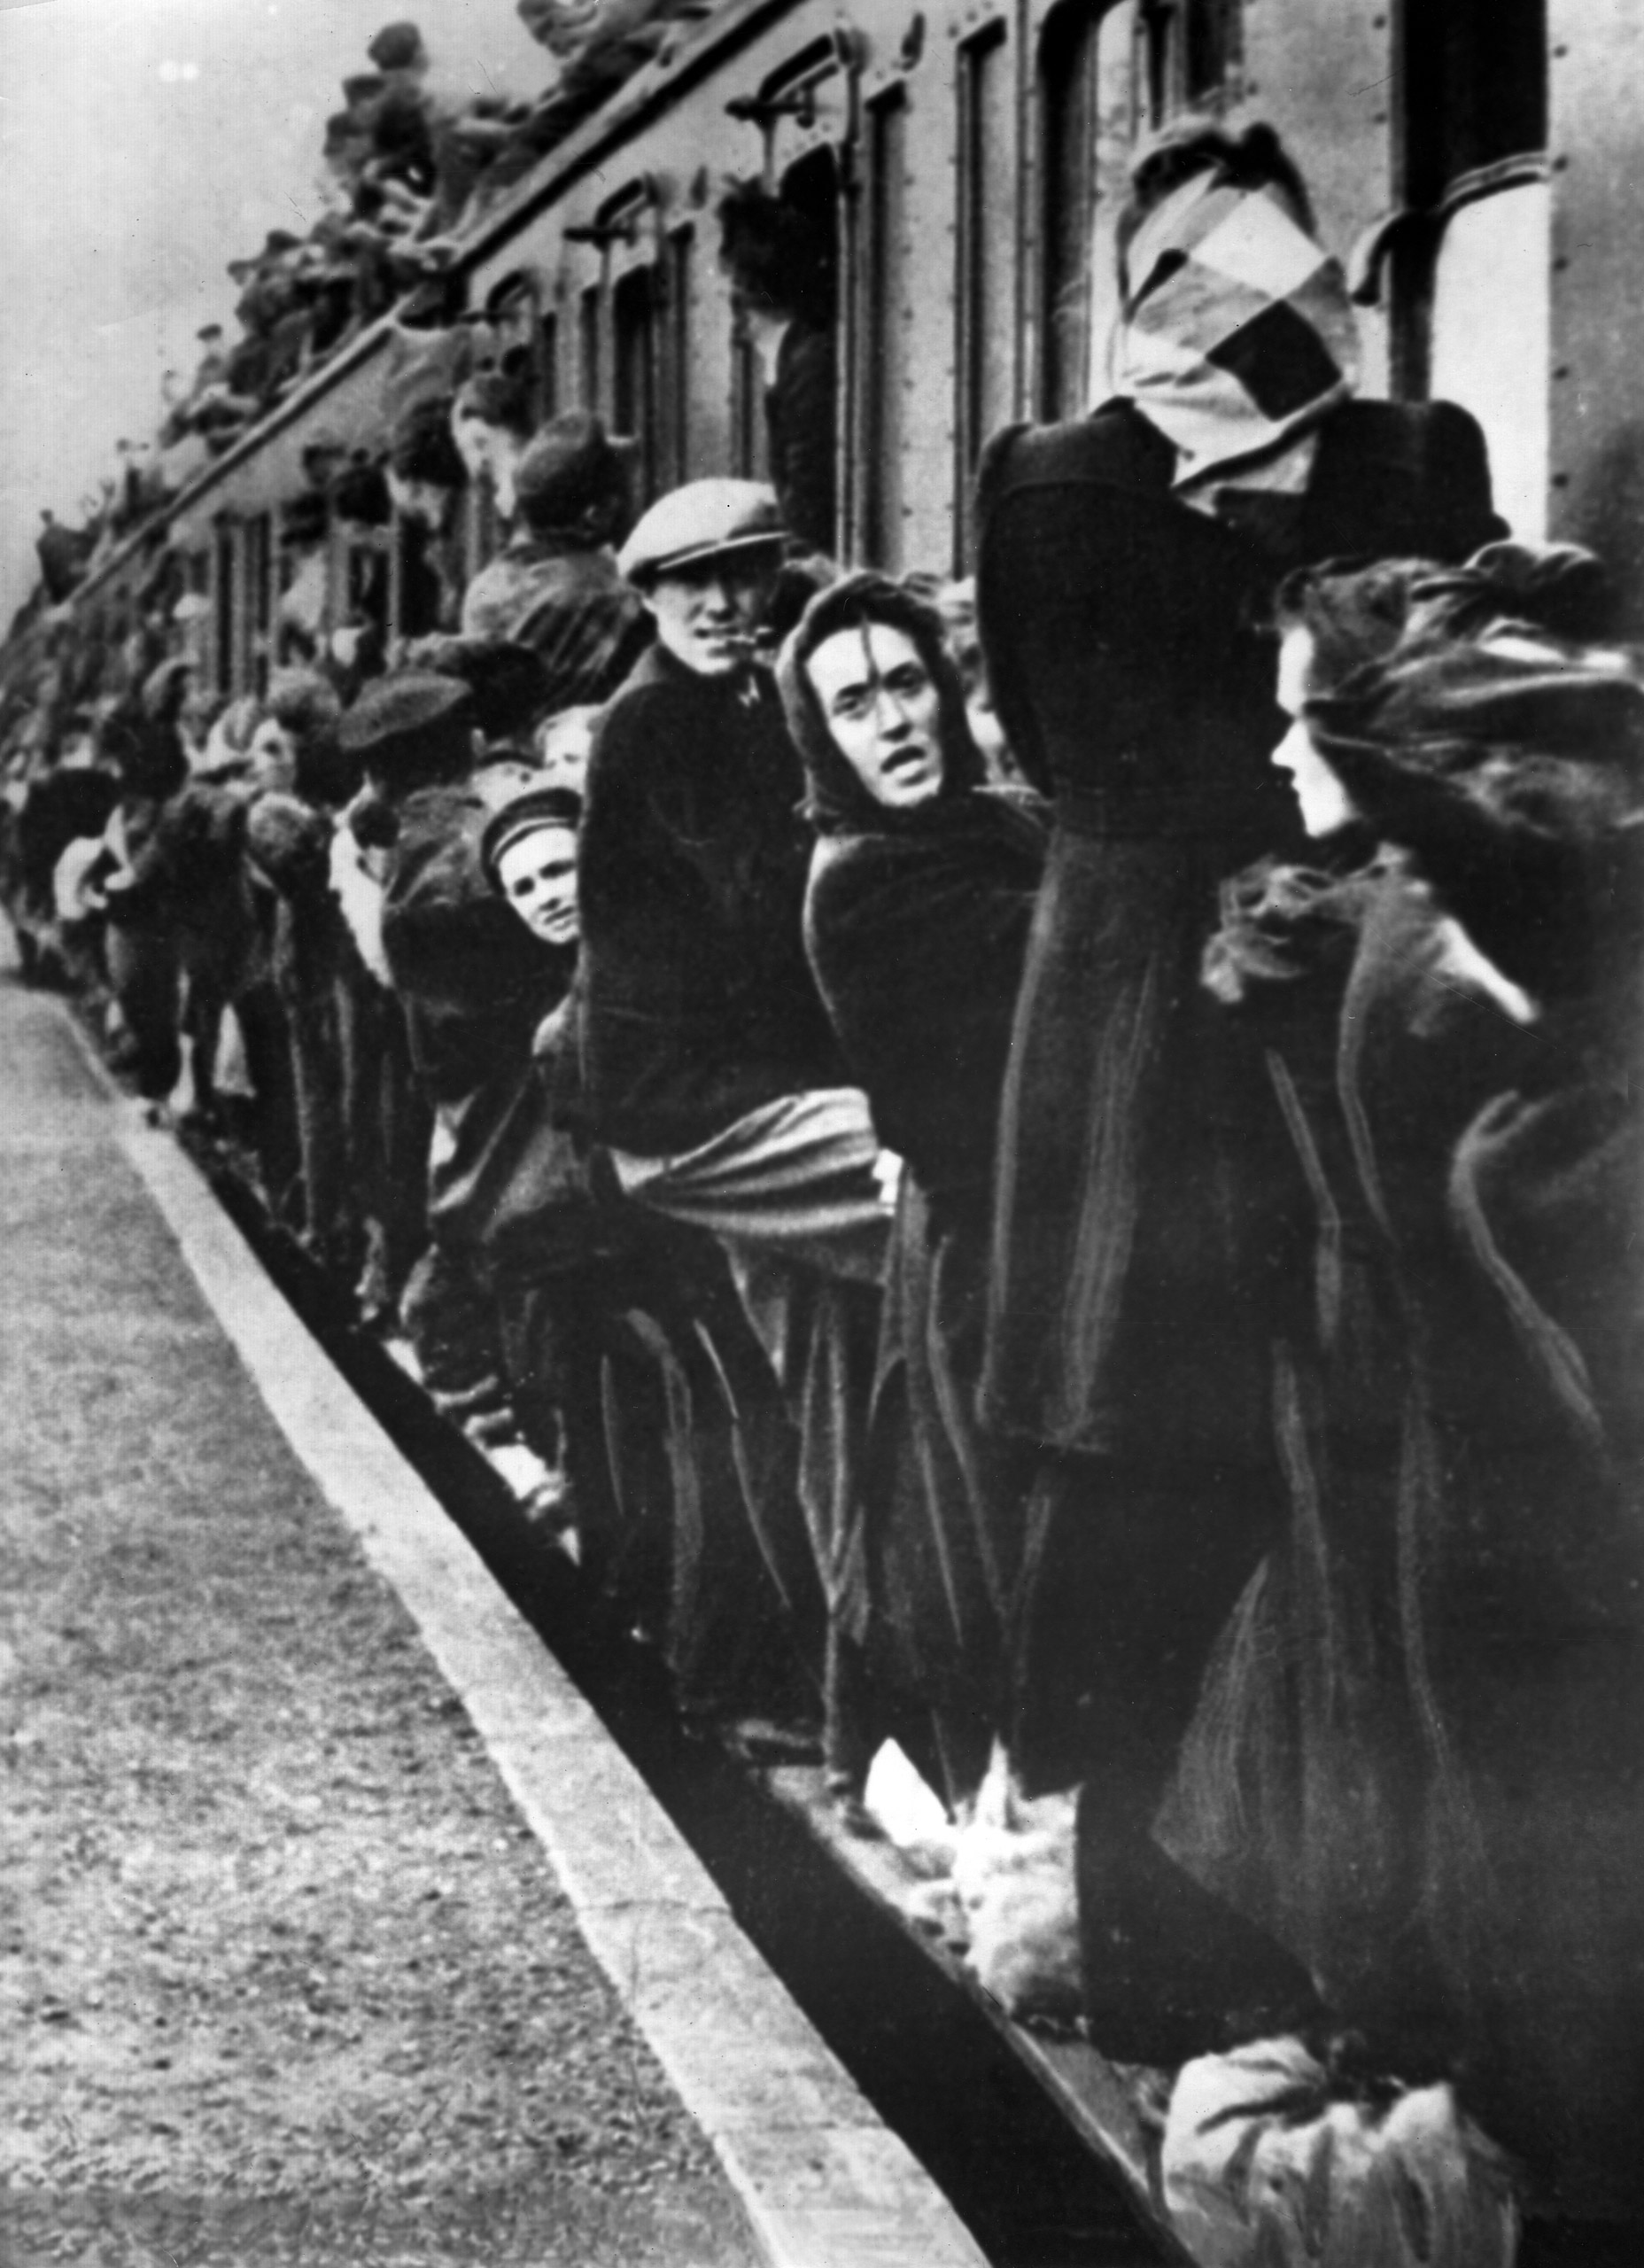 Refugees from eastern Germany around 1944-1945.